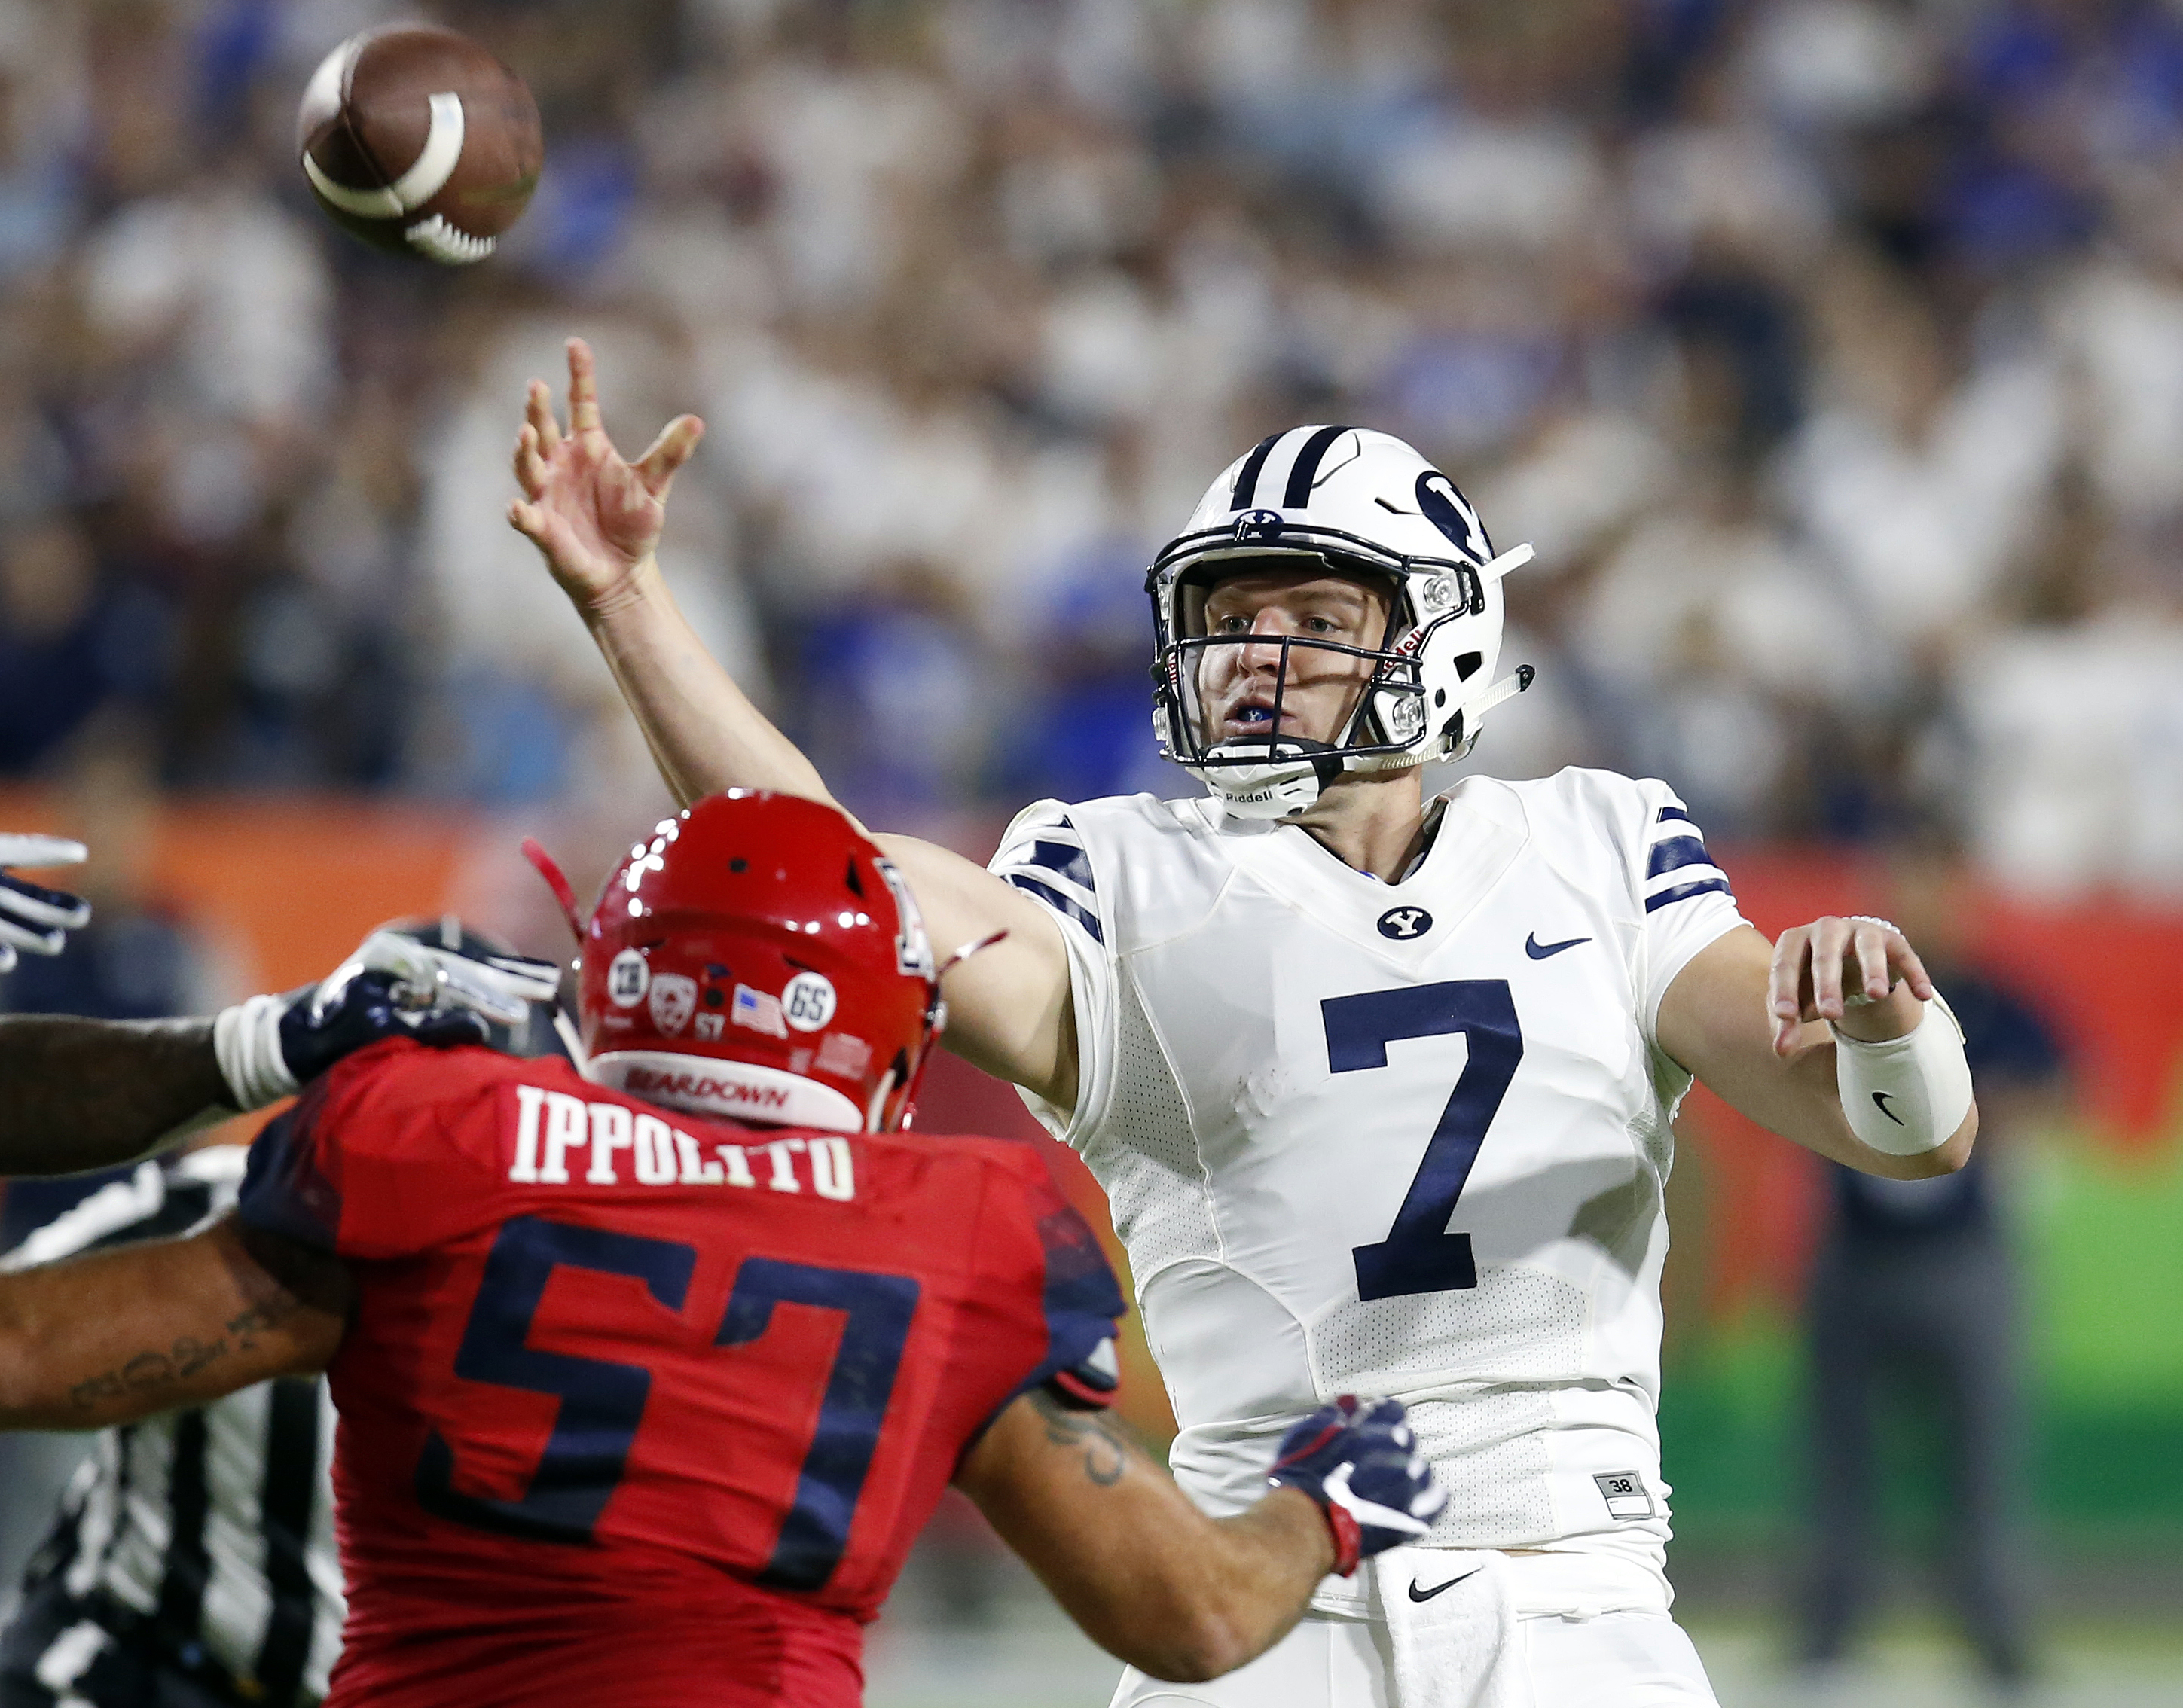 BYU quarterback Taysom Hill (7) throws during the first half against Arizona in an NCAA college football game, Saturday, Sept. 3, 2016, in Phoenix. (AP Photo/Rick Scuteri)